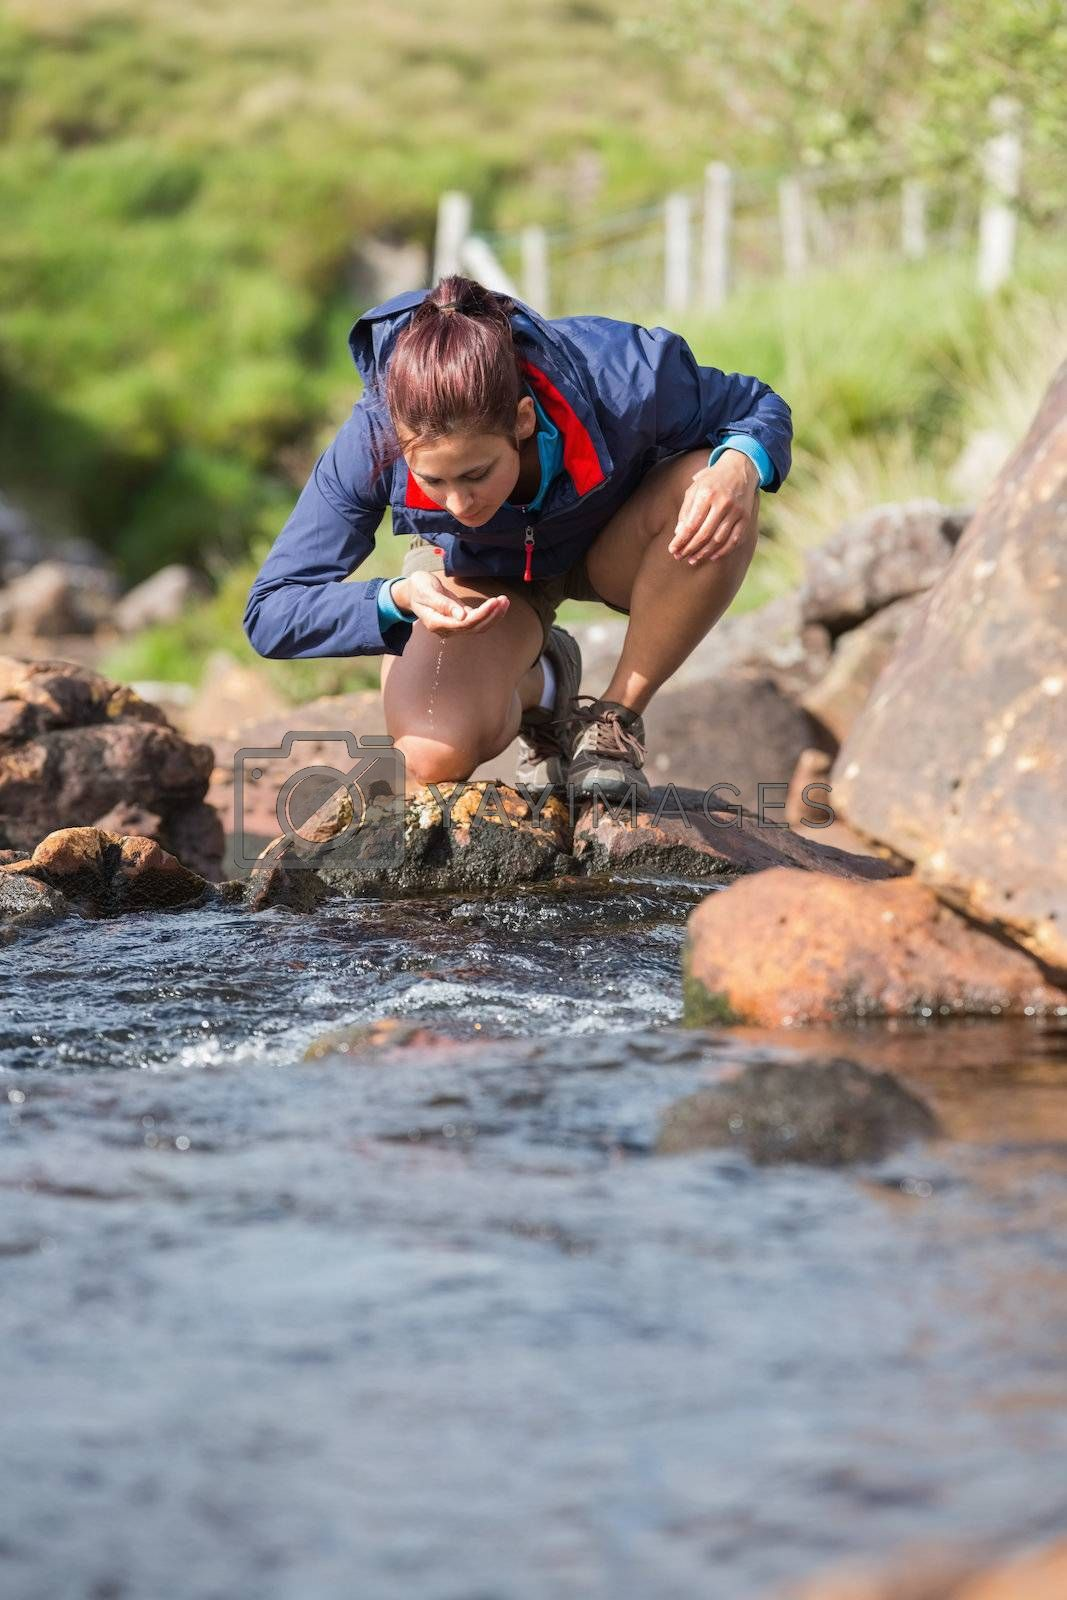 Hiker bending to take a drink from the stream by Wavebreakmedia